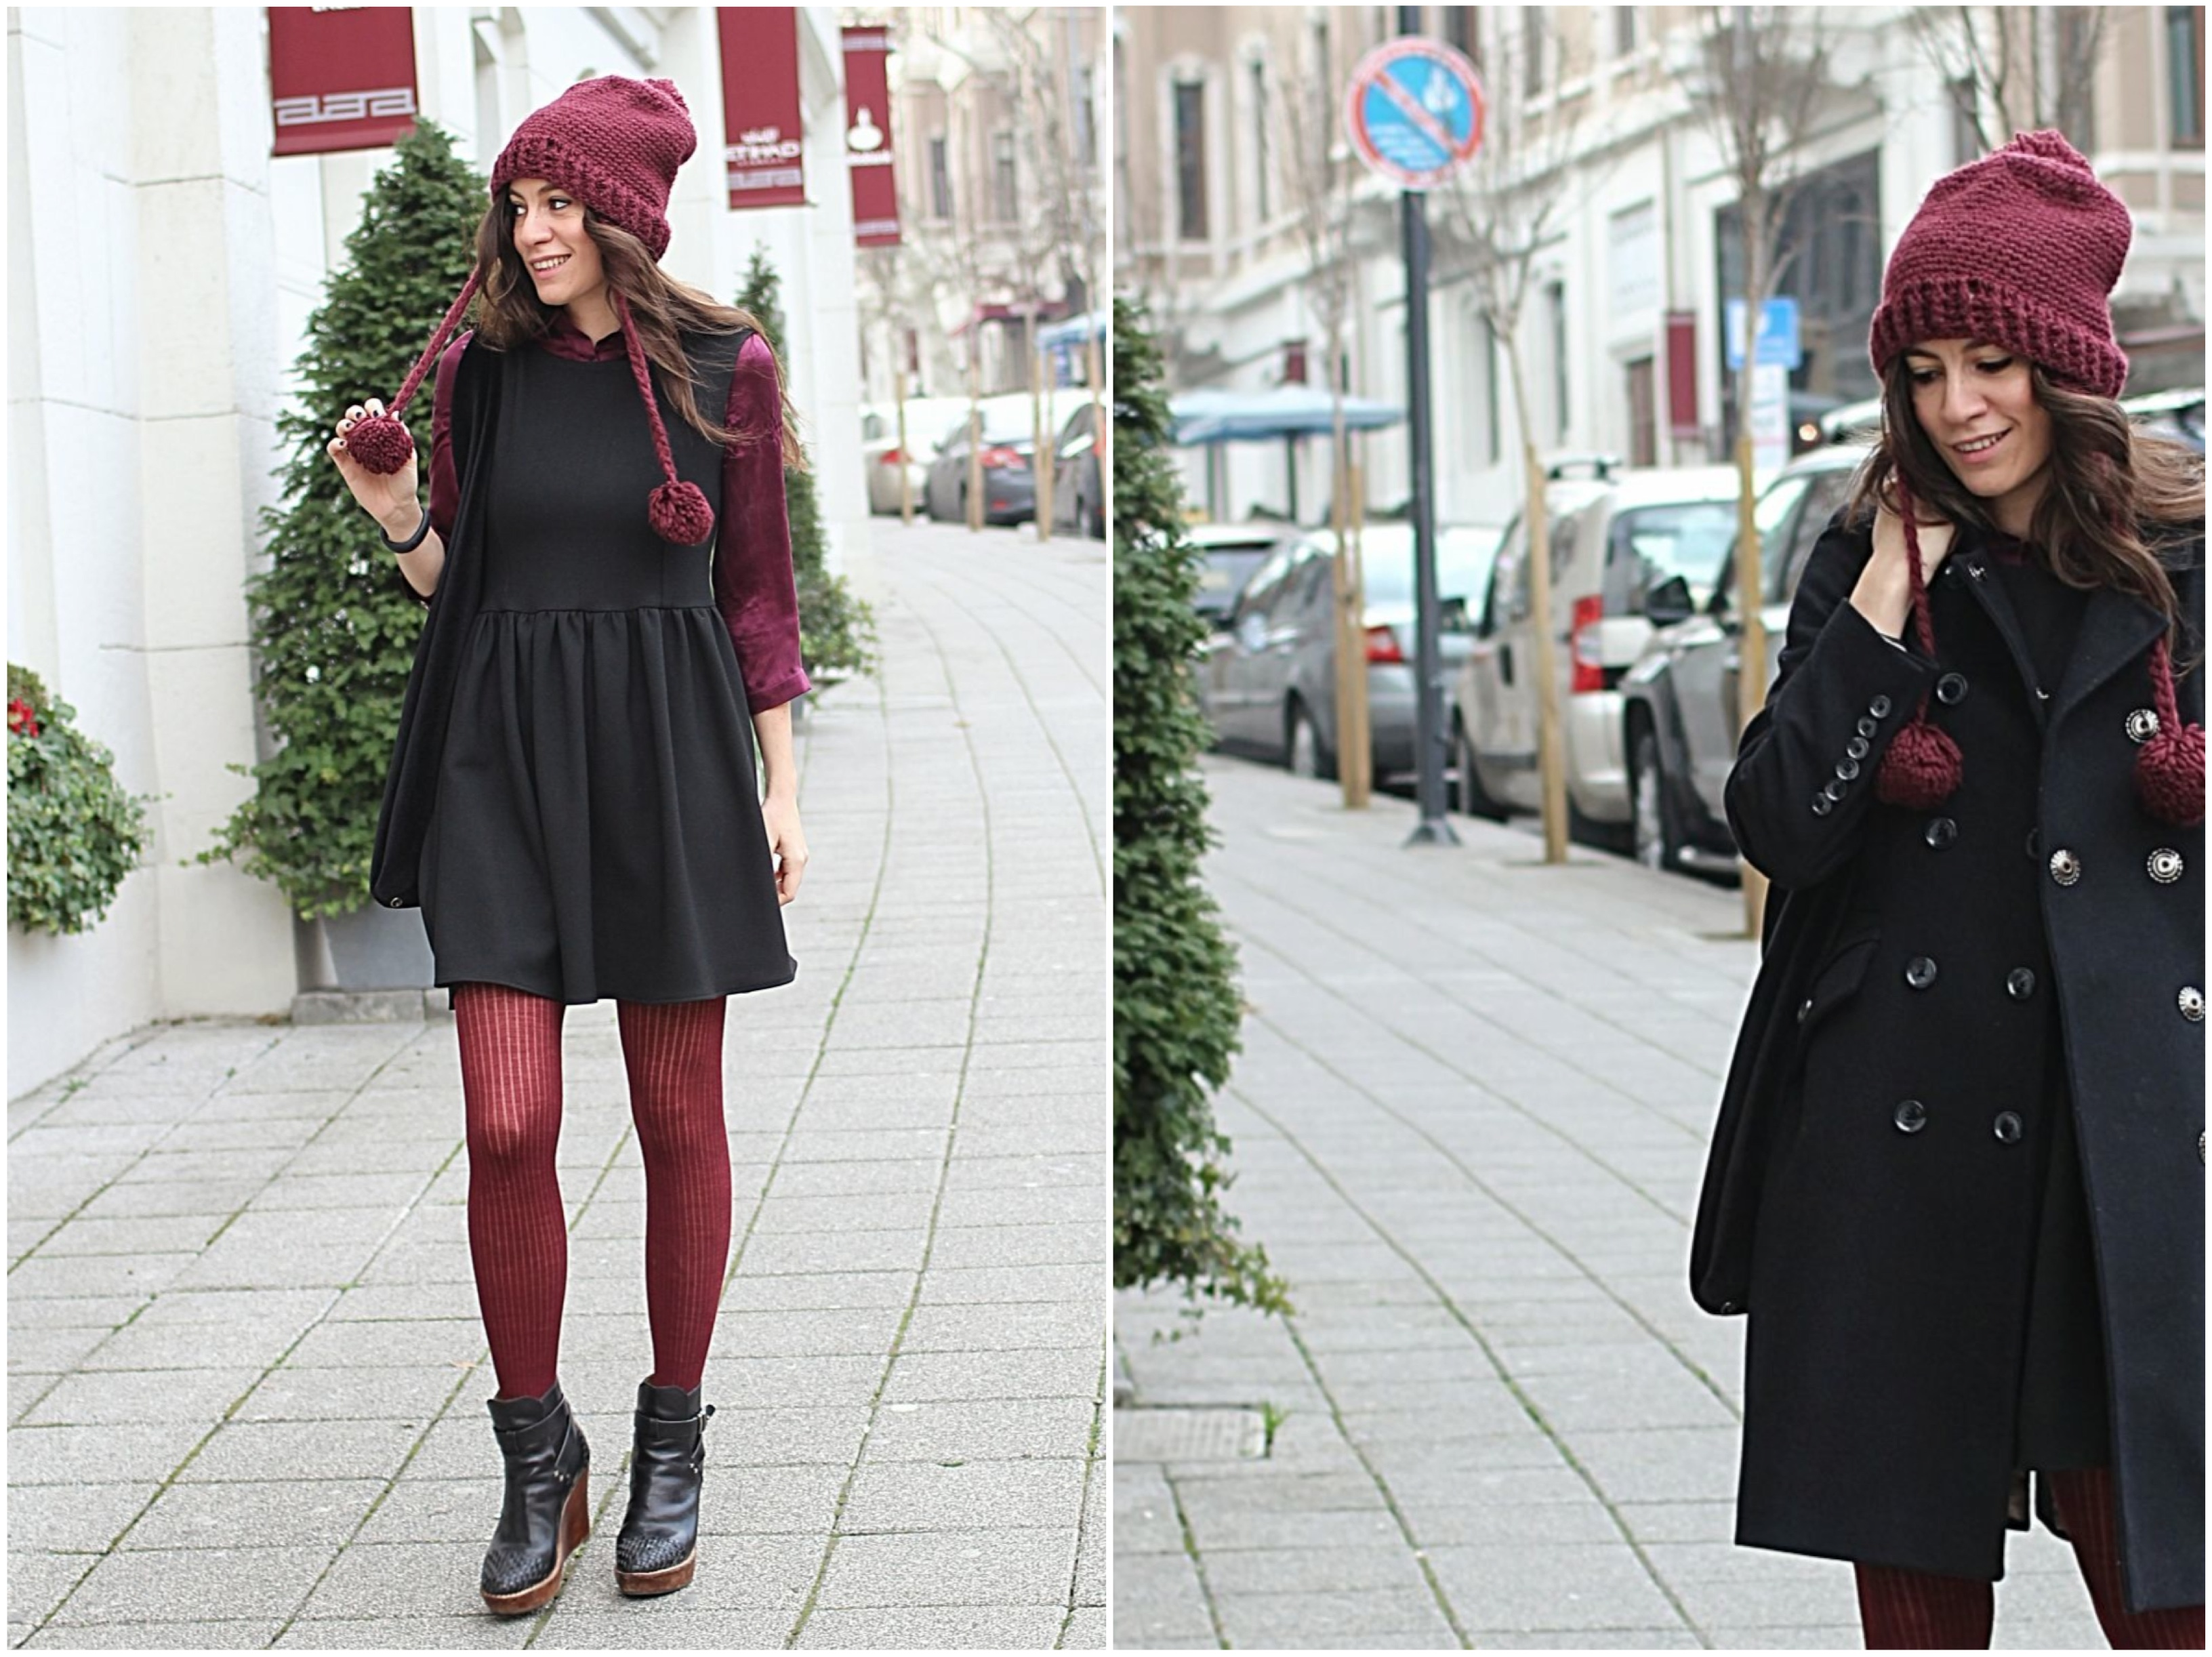 little black dress, burgundy, offnegiysem, streetstyle, outfit, blogger,